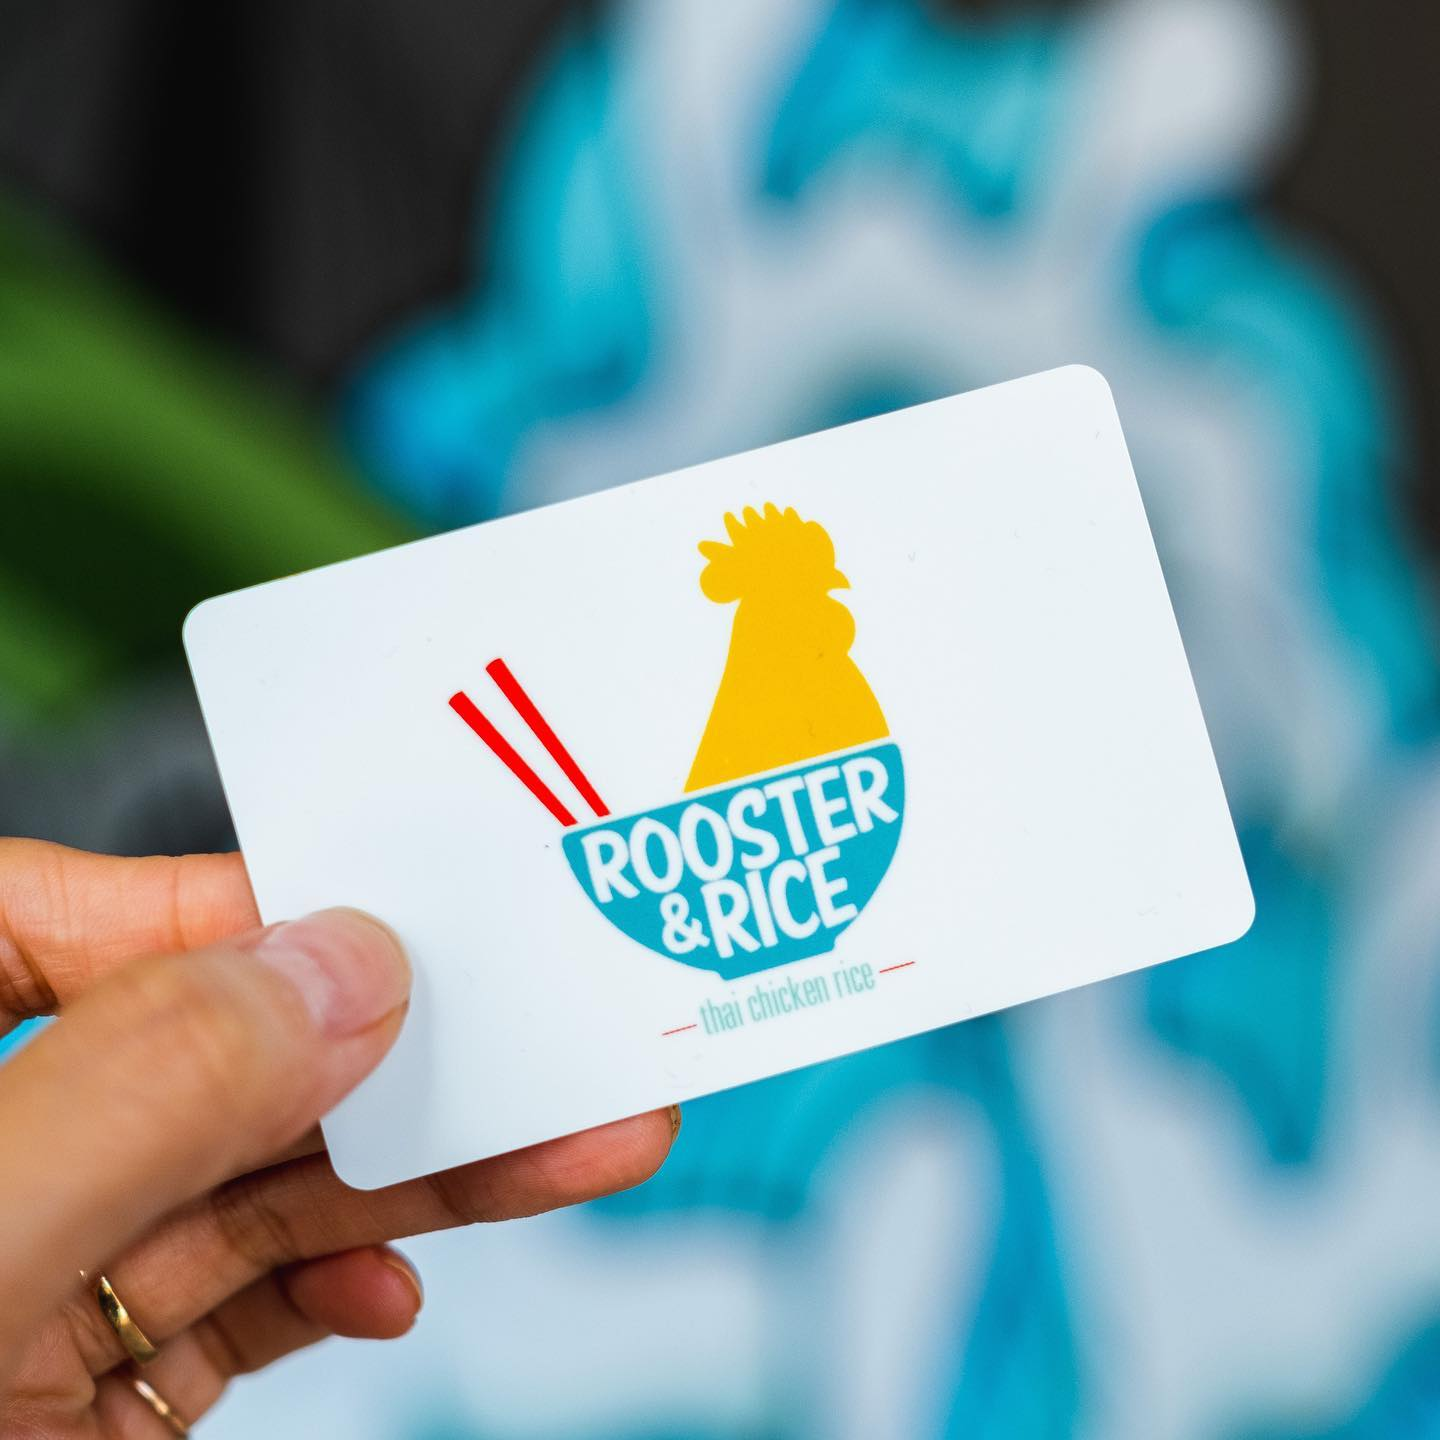 Restaurant gift card from Rooster & Rice